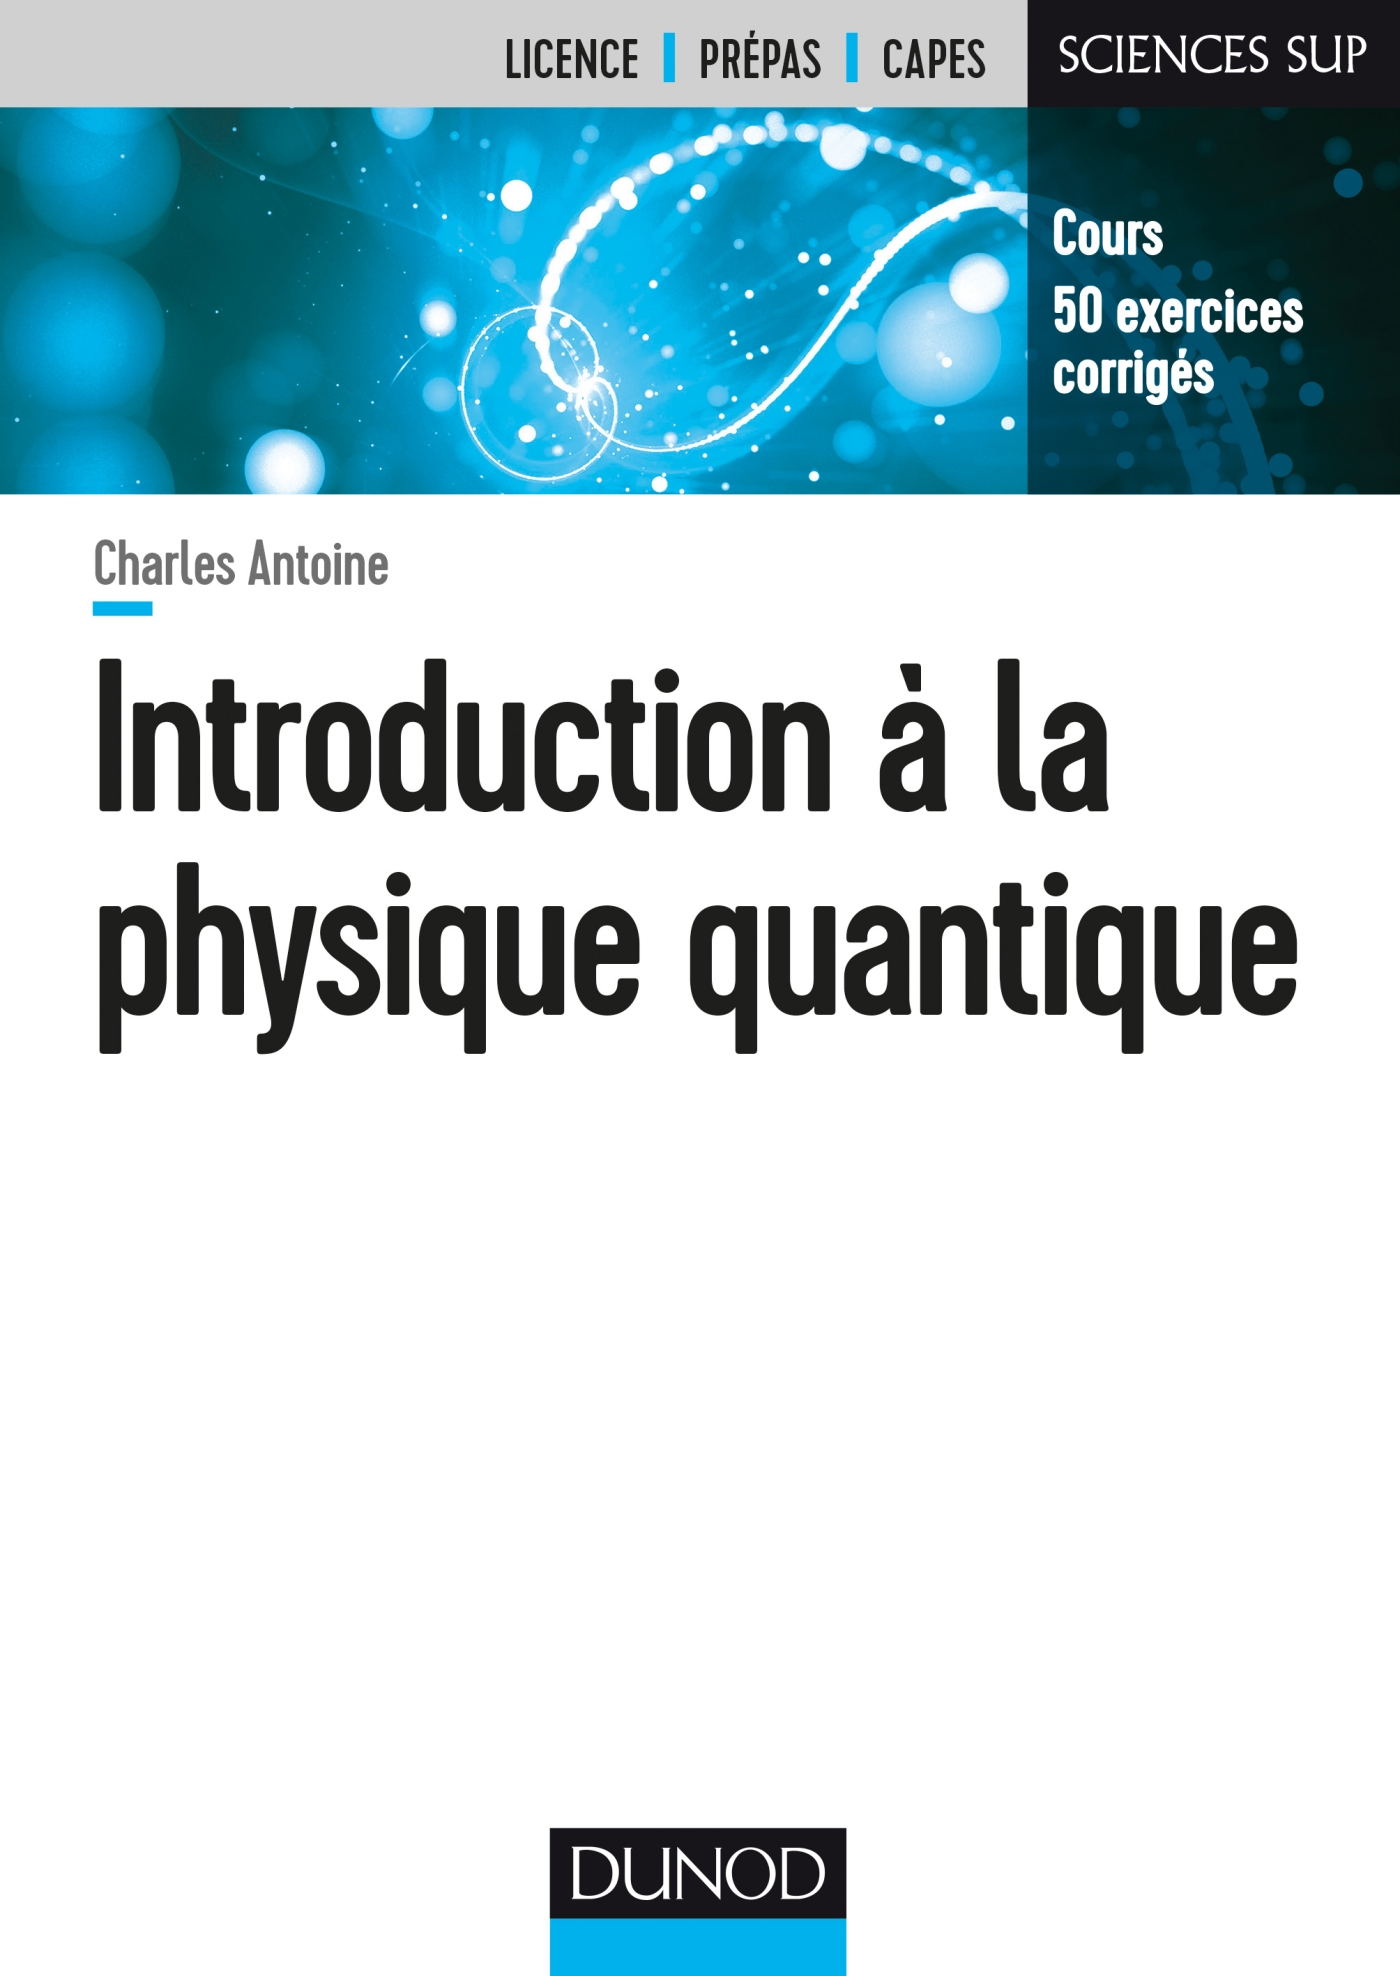 Introduction à la physique quantique